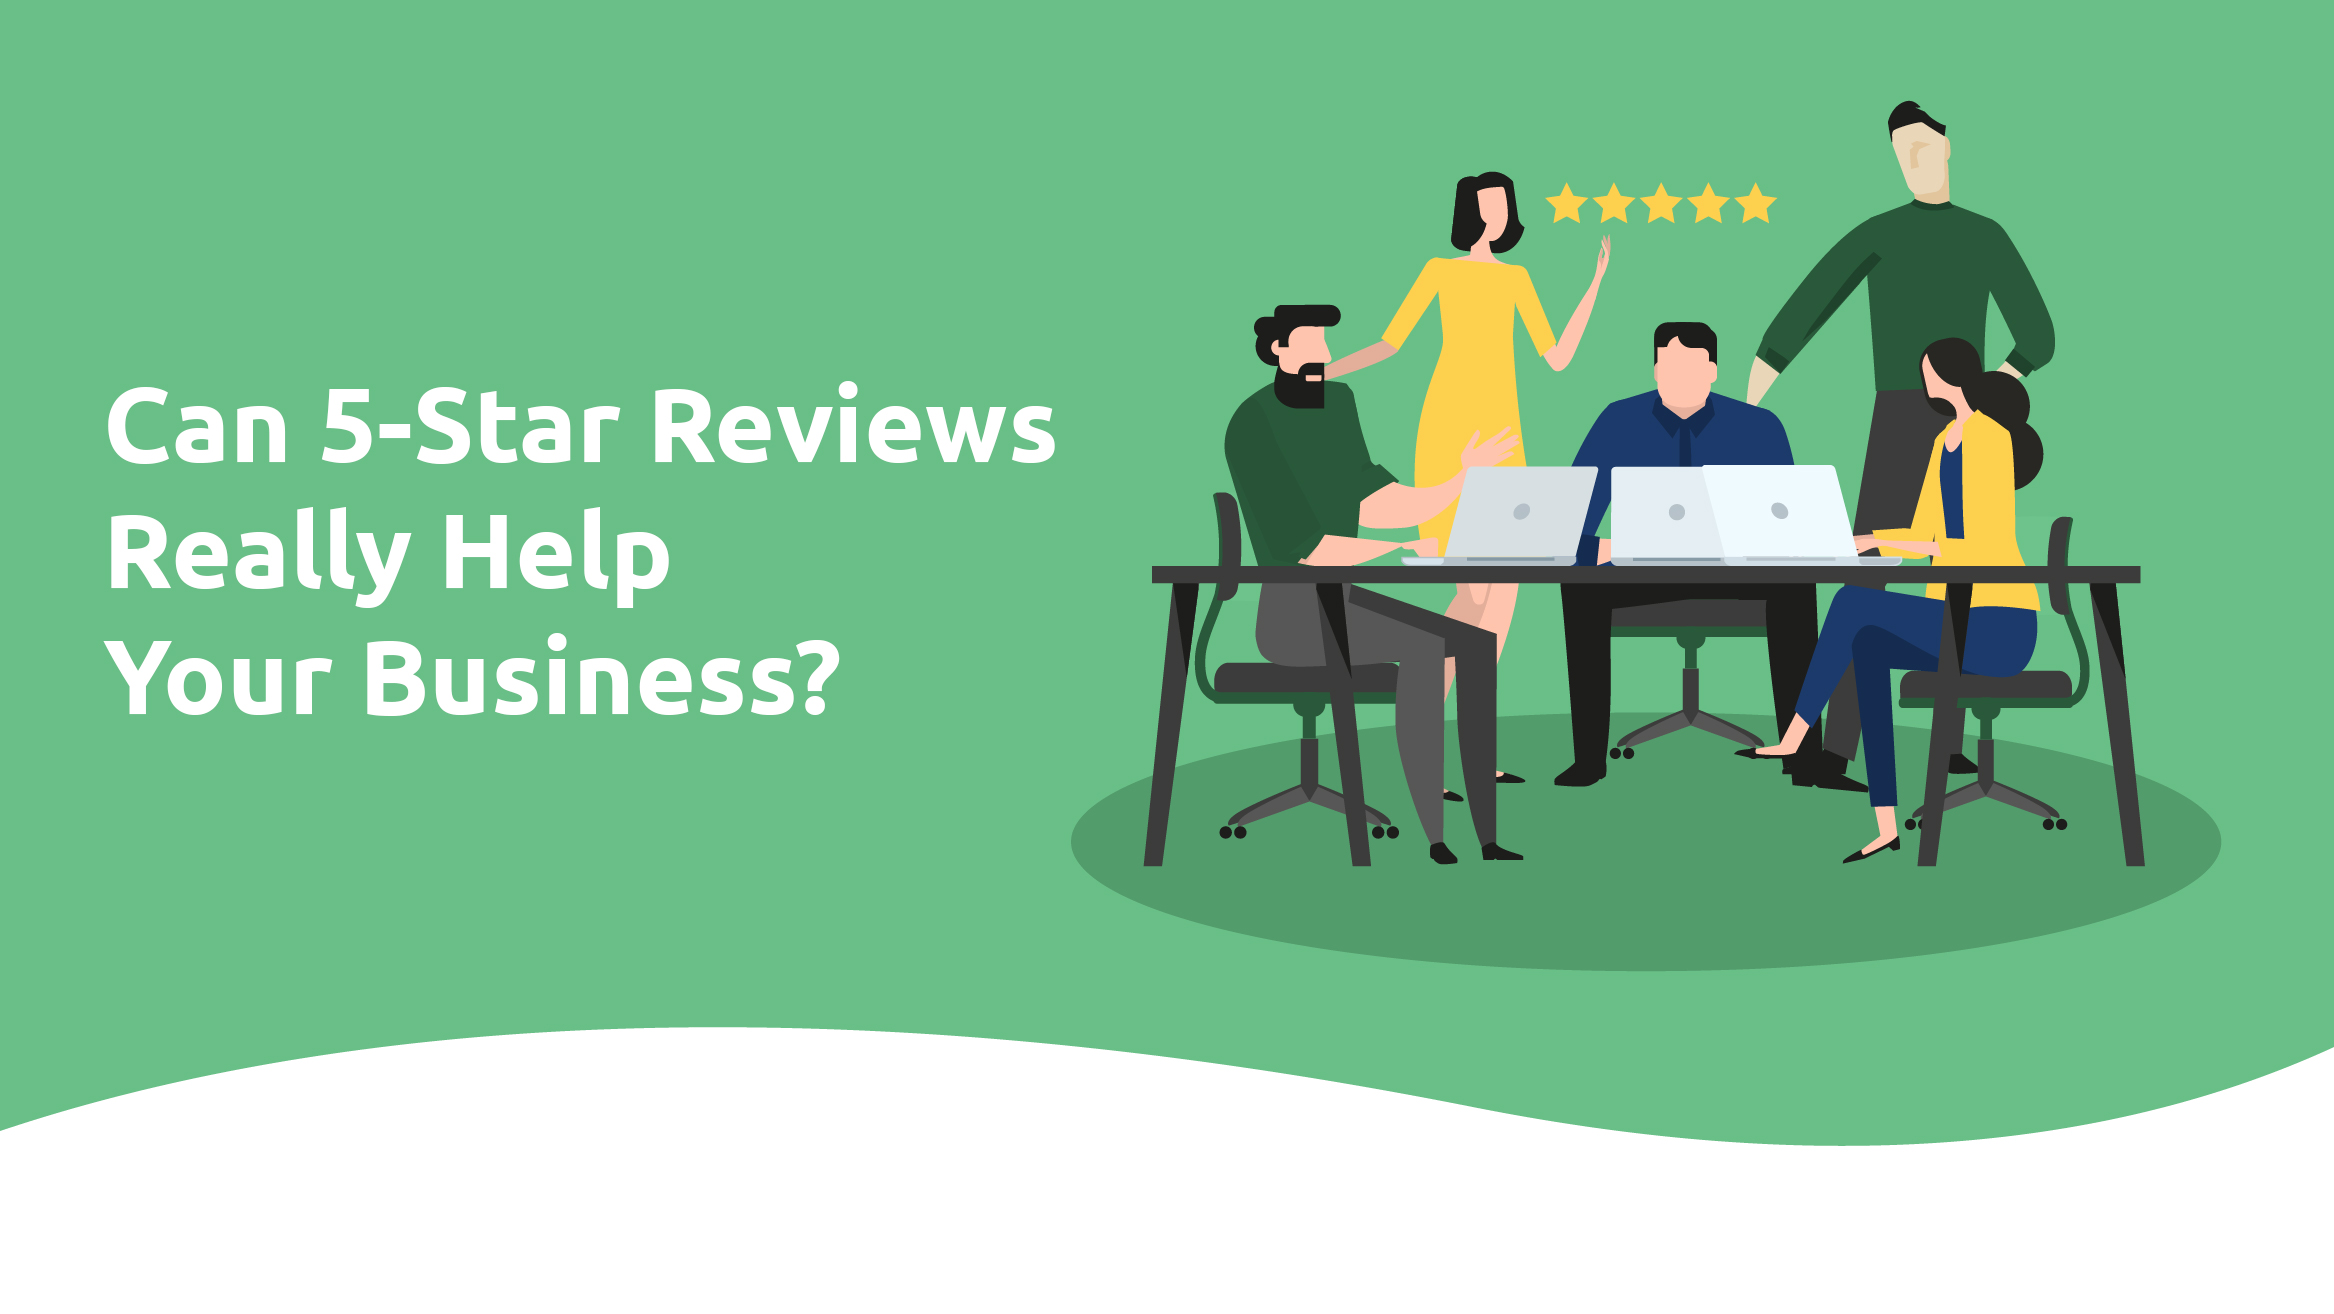 Can 5-Star Reviews Really Help Your Business?